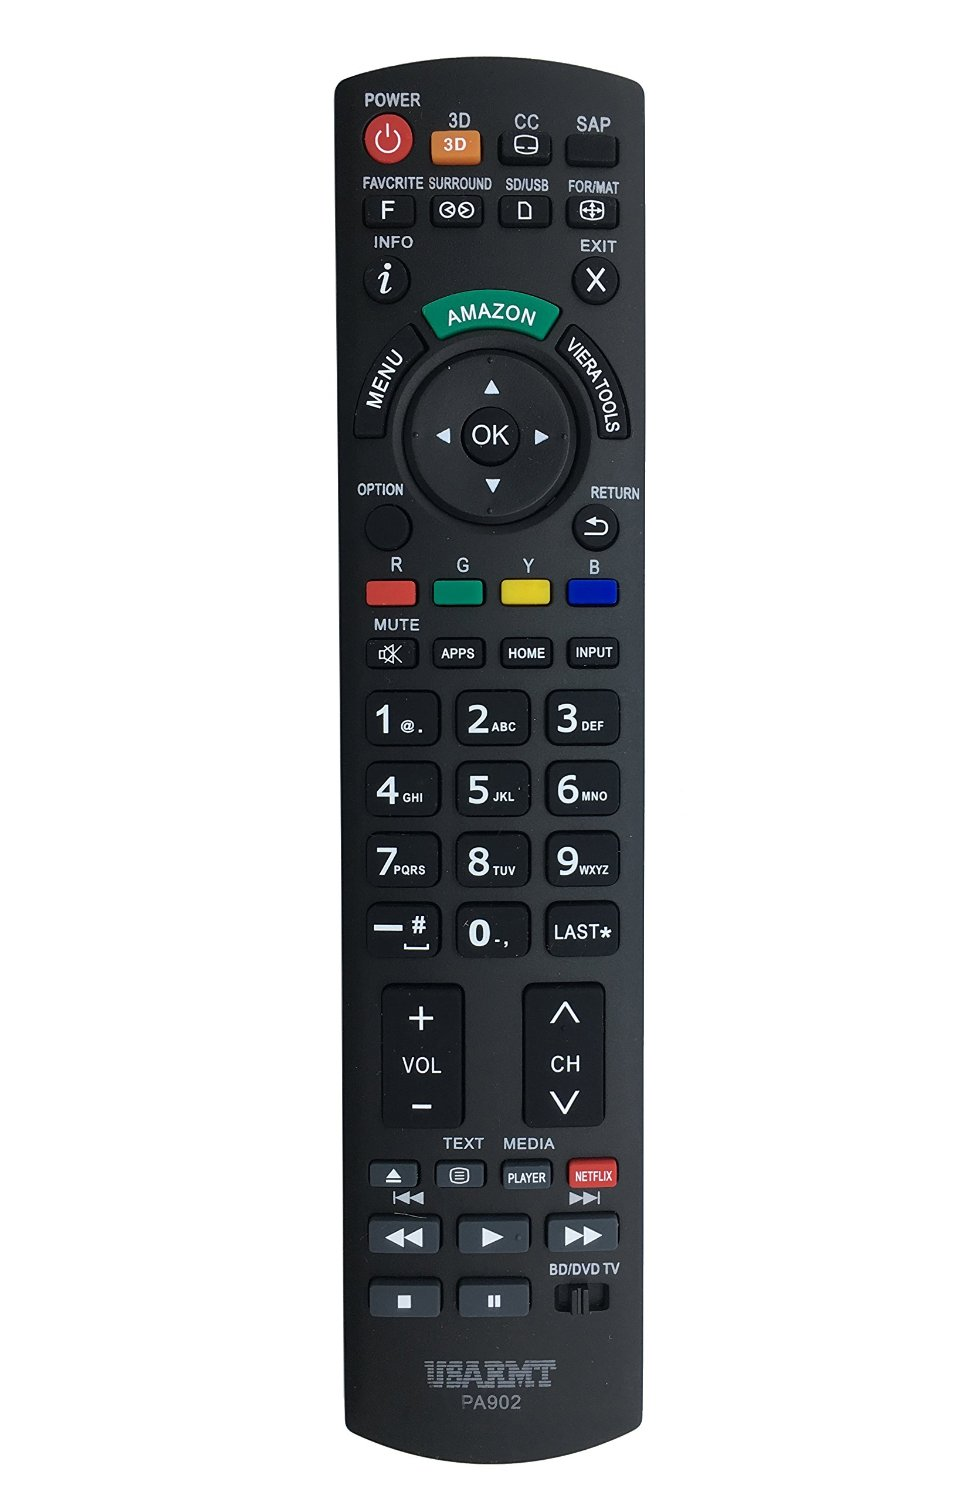 VINABTY NEW Replaced Remote PA902 fits for Panasonic Plasma LCD LED 3D TV DVD Blu-ray Player Remote Such as N2QAYB000100 N2QAYB000221 N2QAYB00048 N2QAYB000321 N2QAKB000089